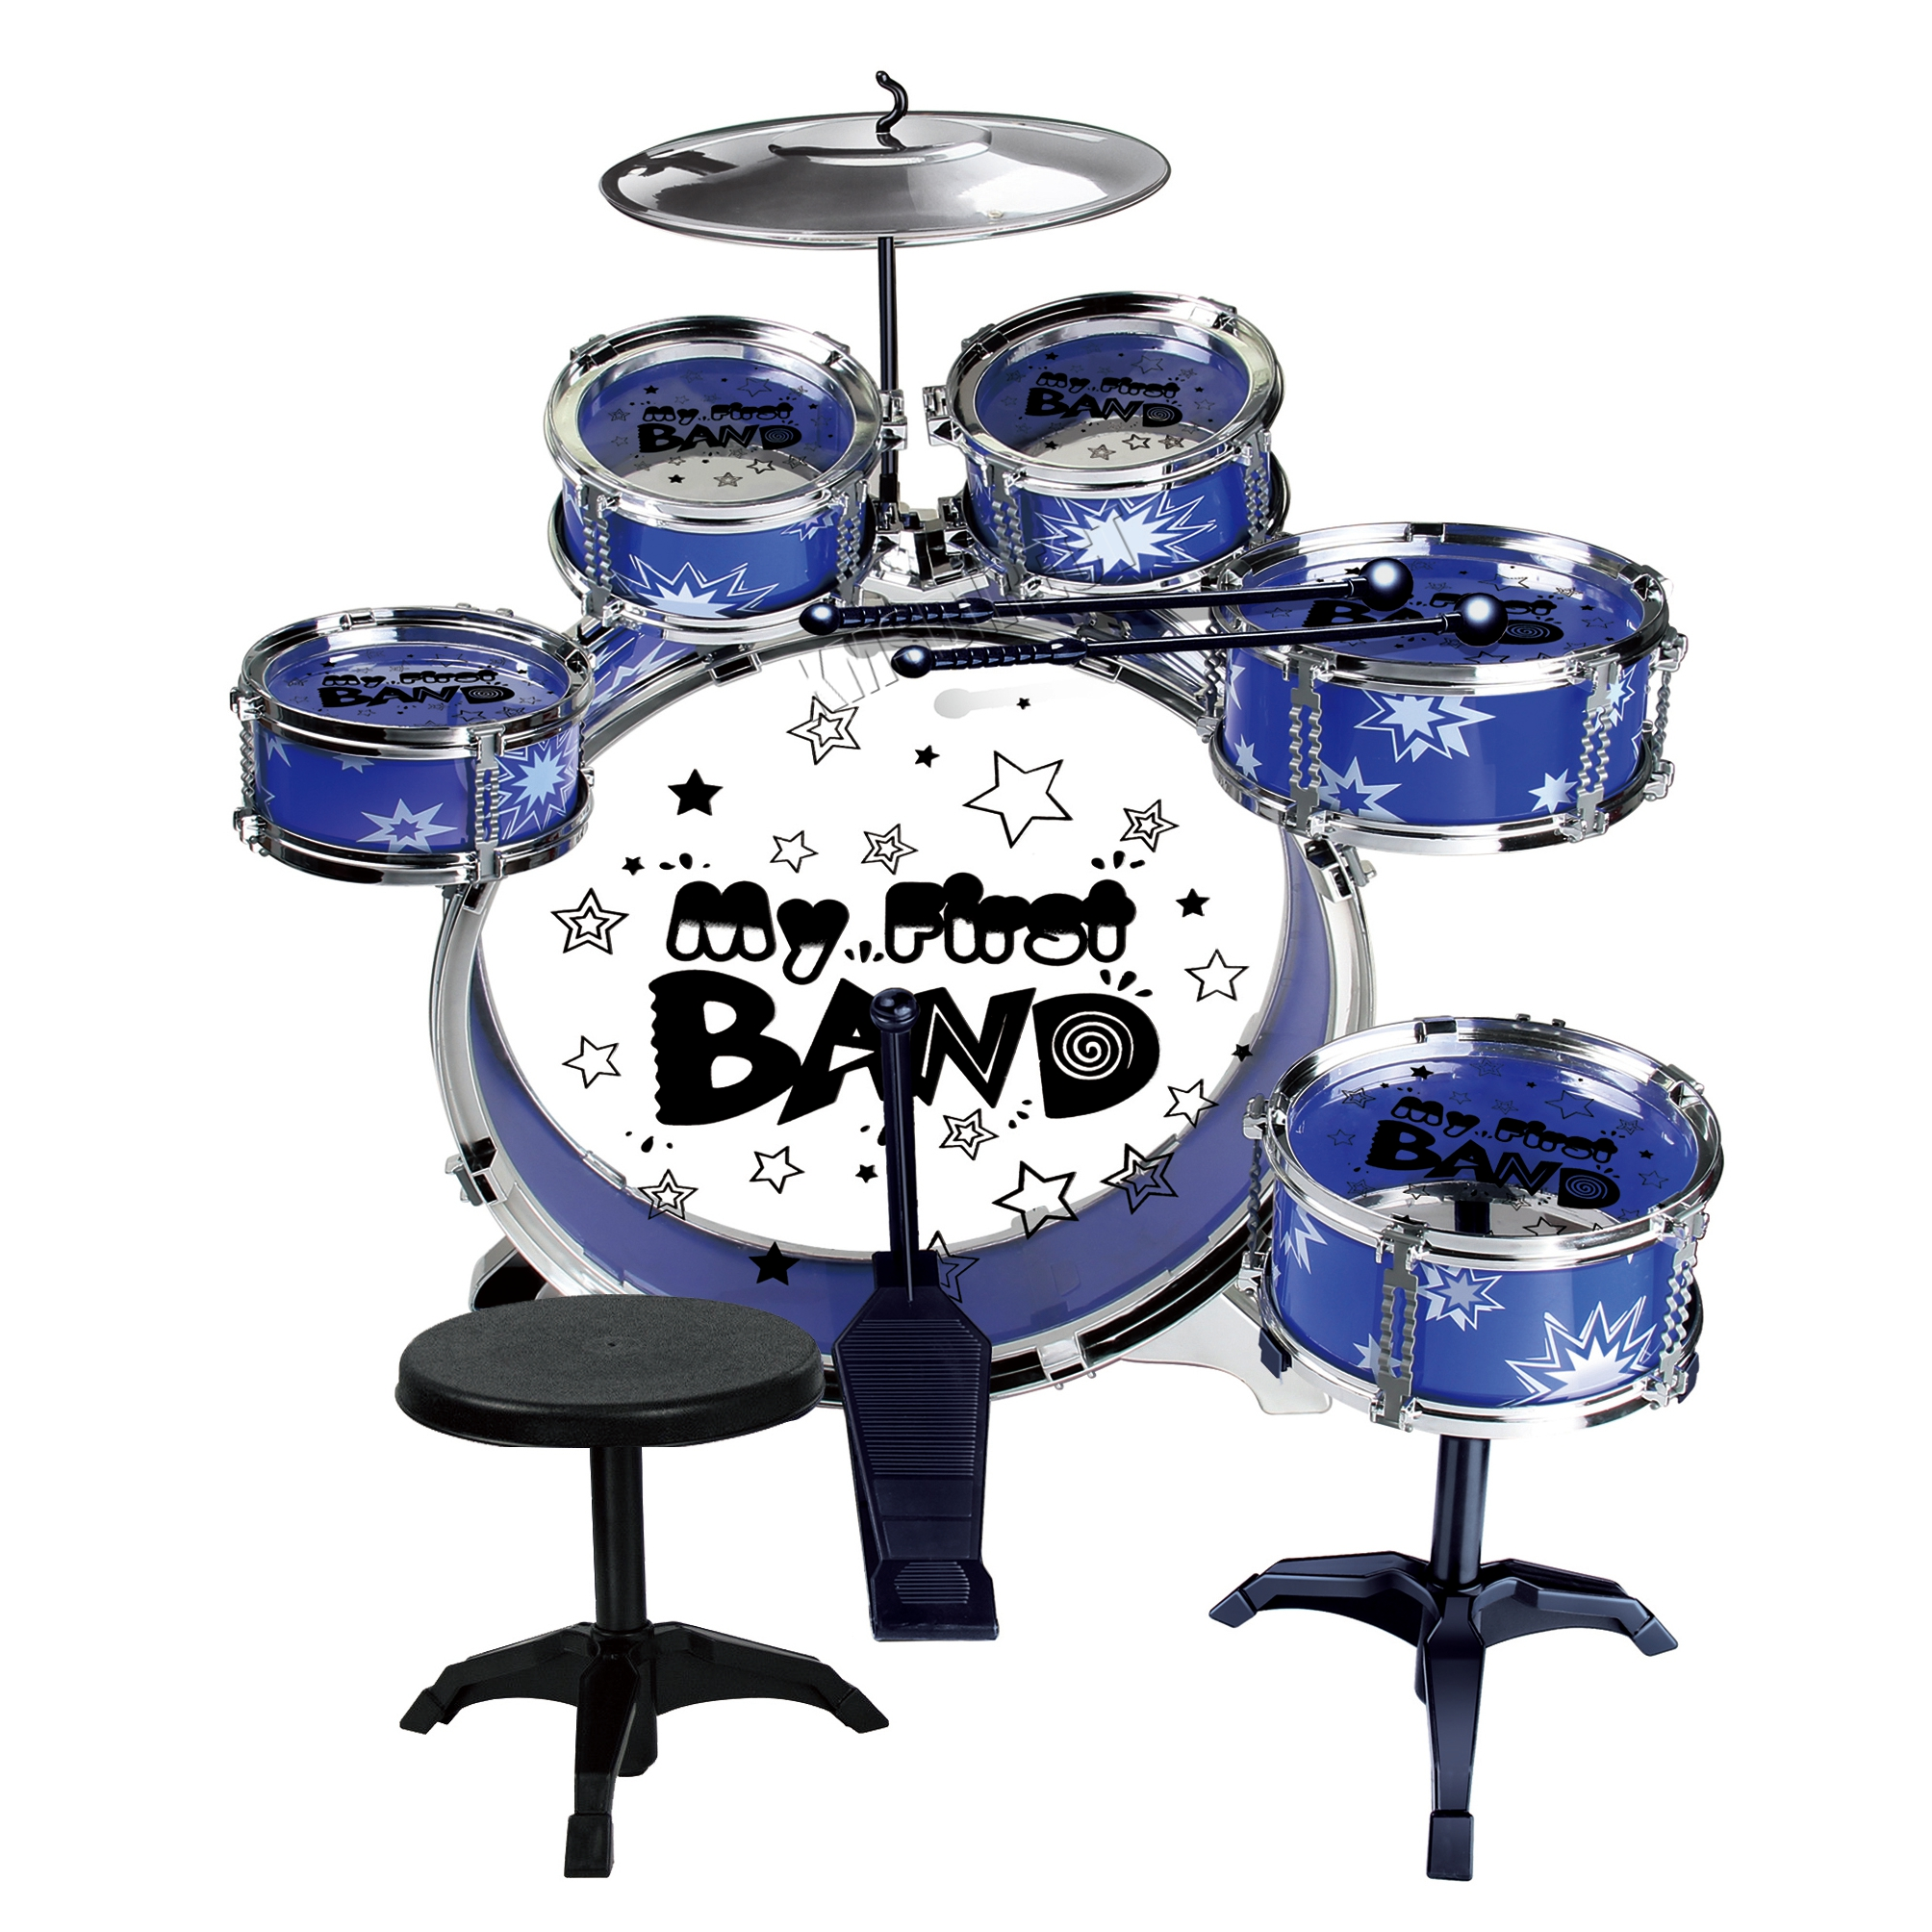 FoxHunter-Kids-Junior-Drum-Play-set-Kit-With-  sc 1 st  eBay & FoxHunter Kids Junior Drum Play set Kit With Stool Sticks Musical ... islam-shia.org